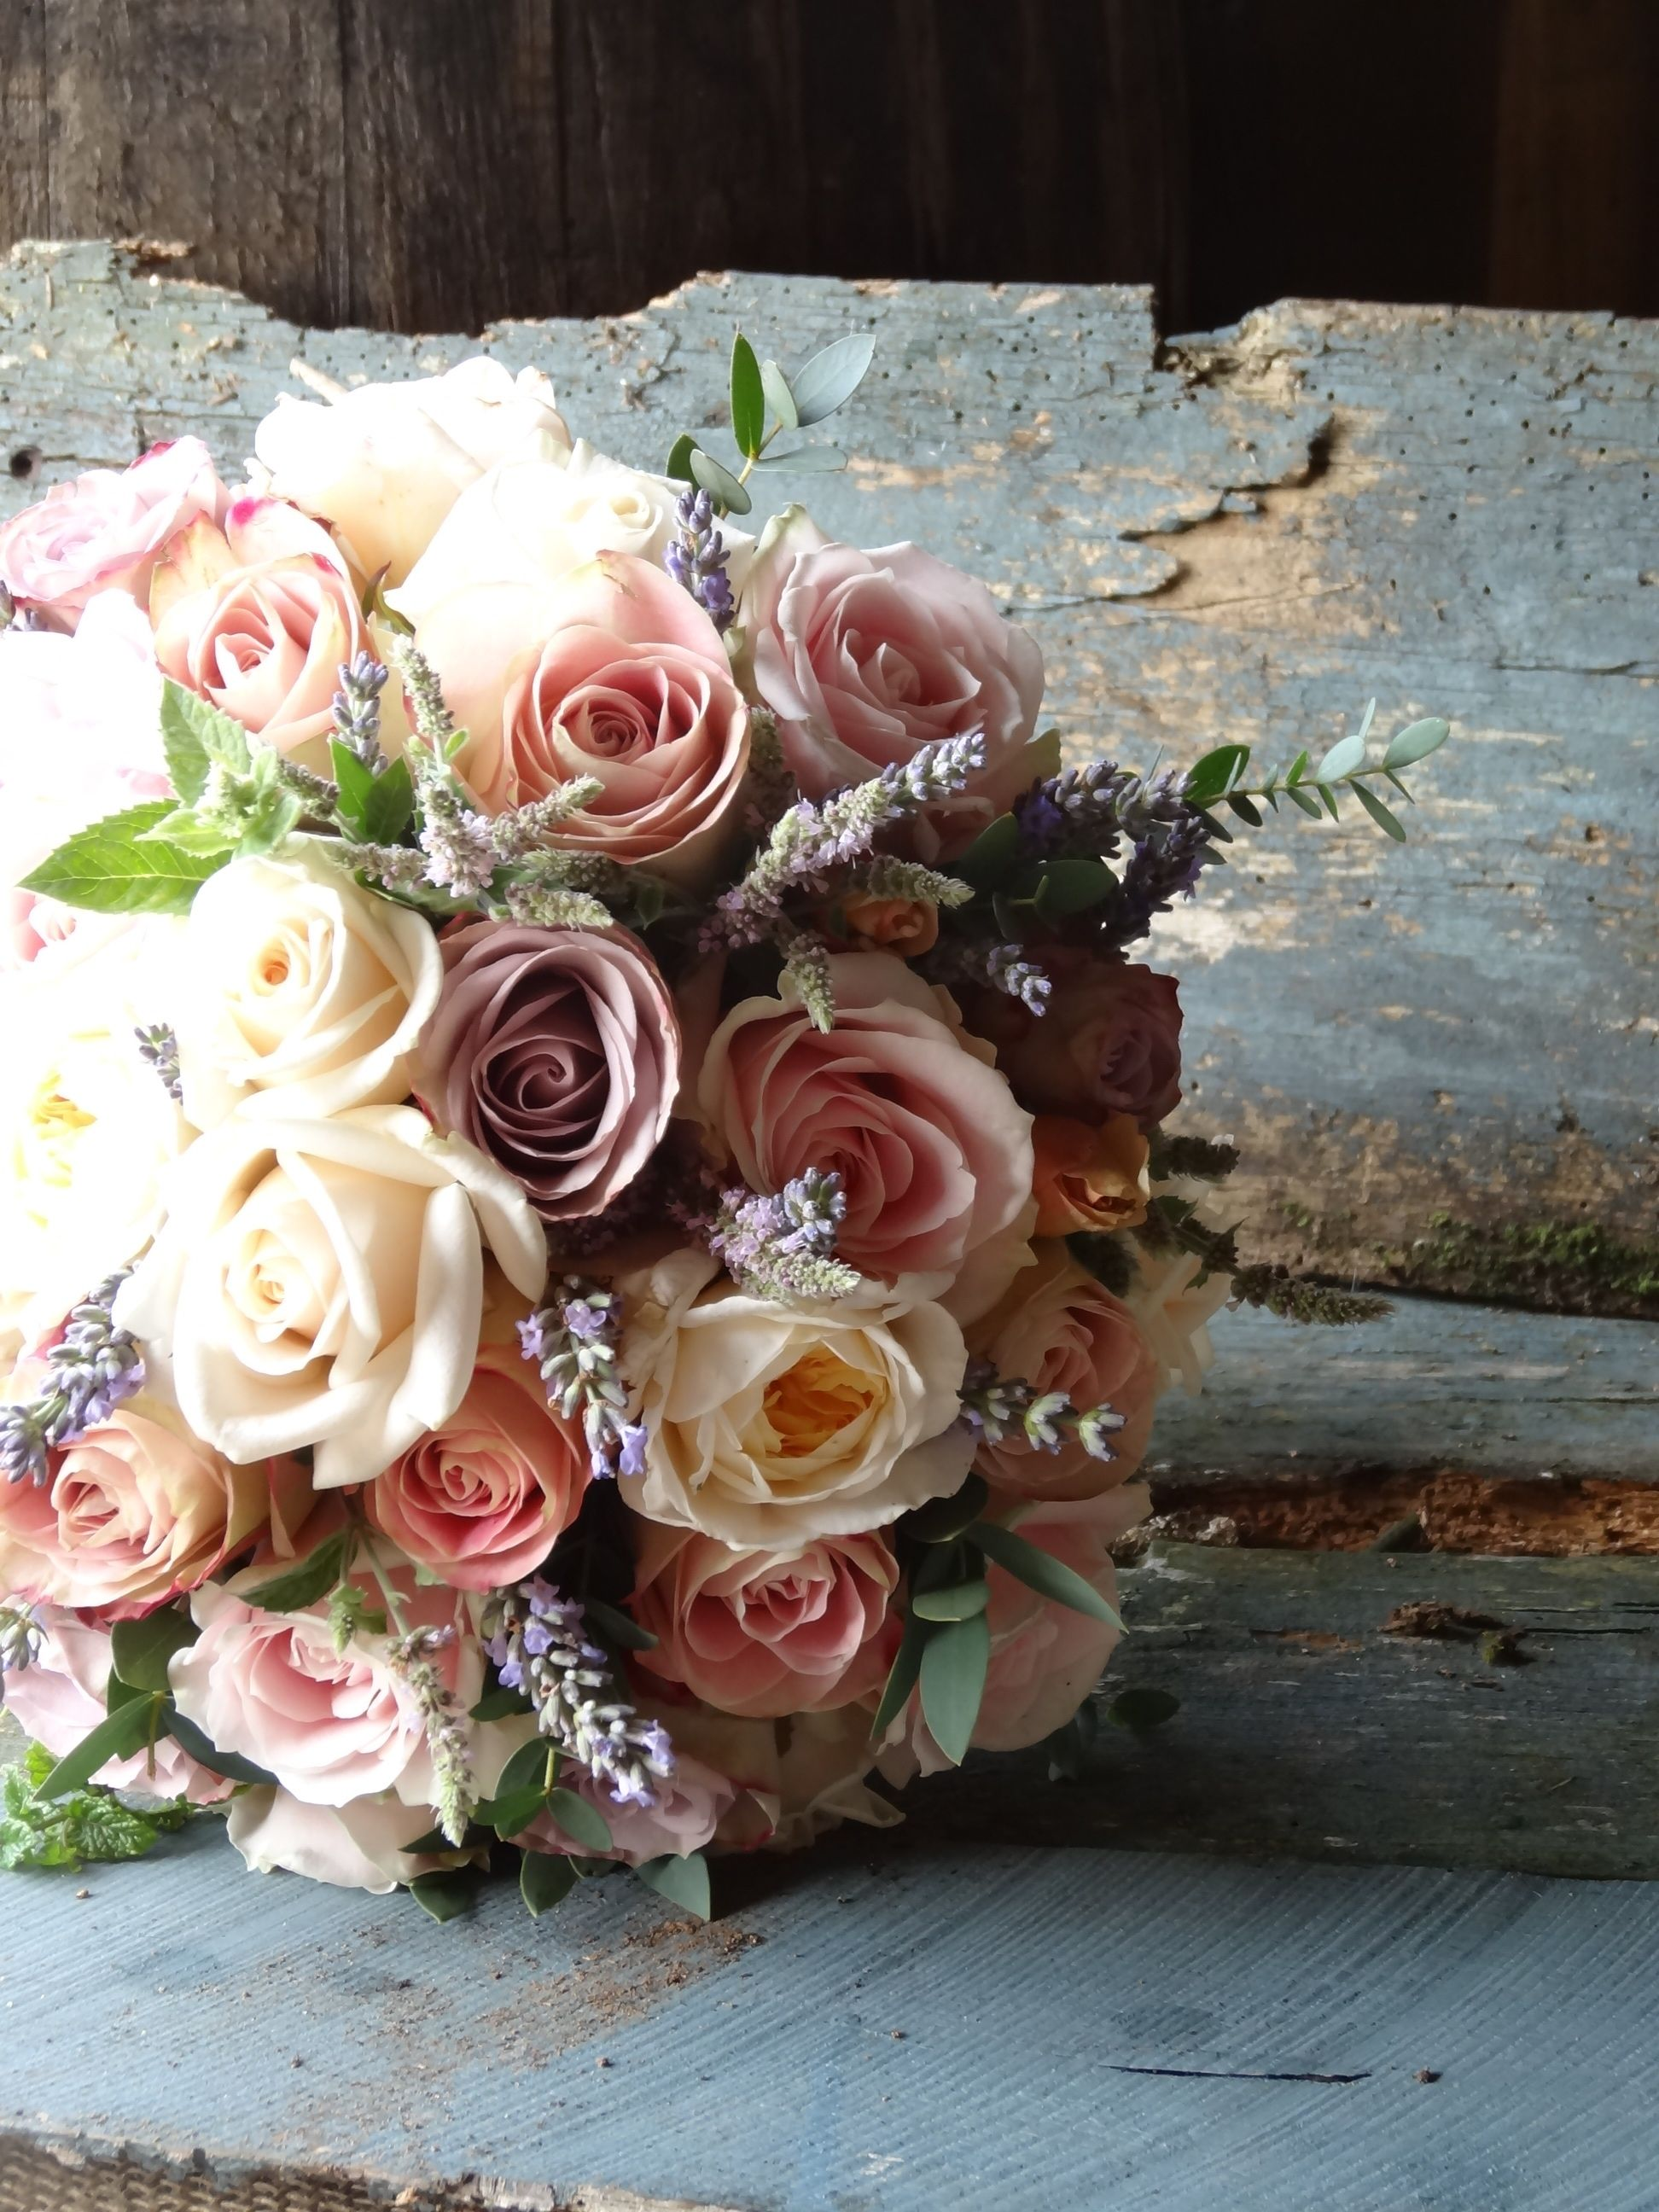 Dusky roses wedding bouquet from catkin catkinflowers dusky roses wedding bouquet from catkin catkinflowers izmirmasajfo